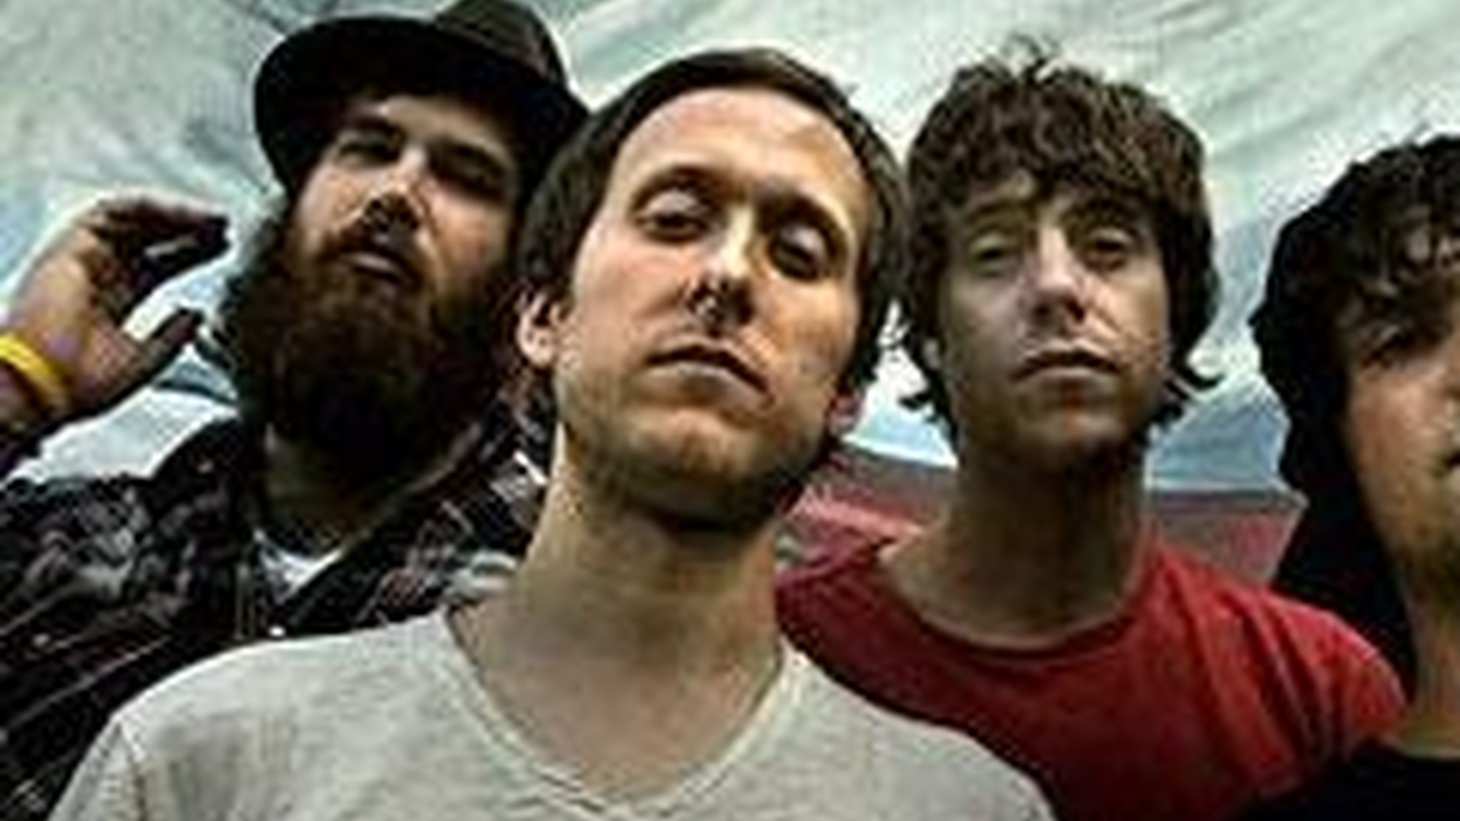 Hailing from Los Angeles, Darker My Love brings their brand of psych-rock to Morning Becomes Eclectic at 11:15am.